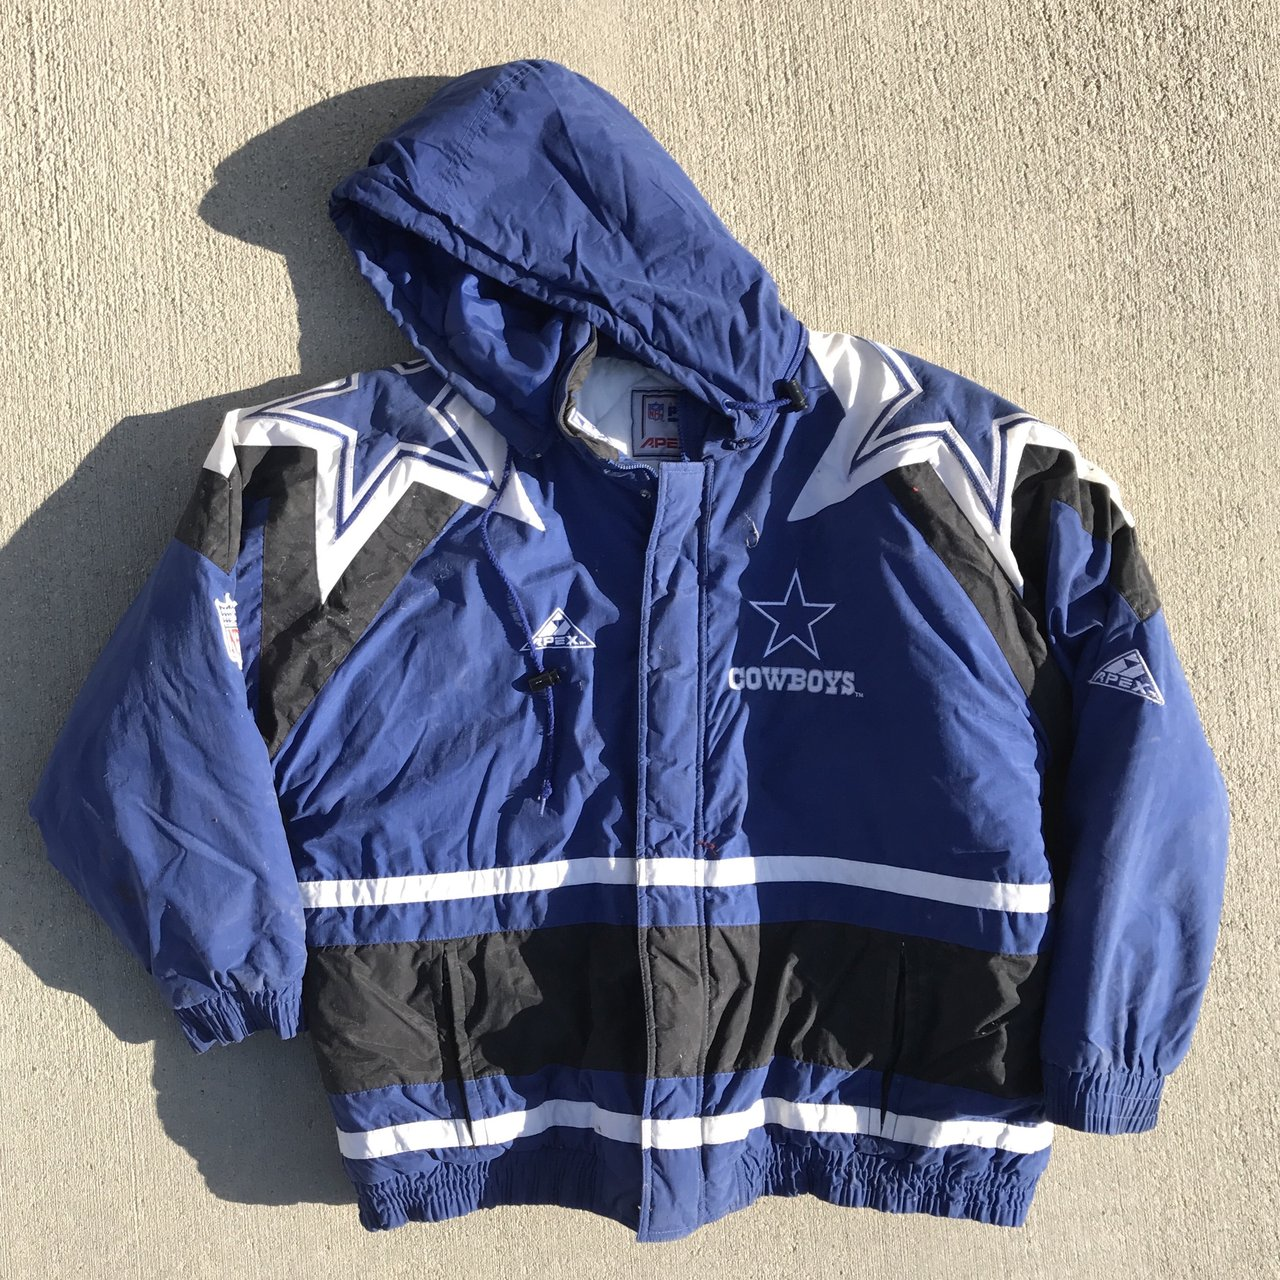 Vintage apex one Dallas Cowboys jacket sz XL  vintage  90s - Depop 381fc52aa